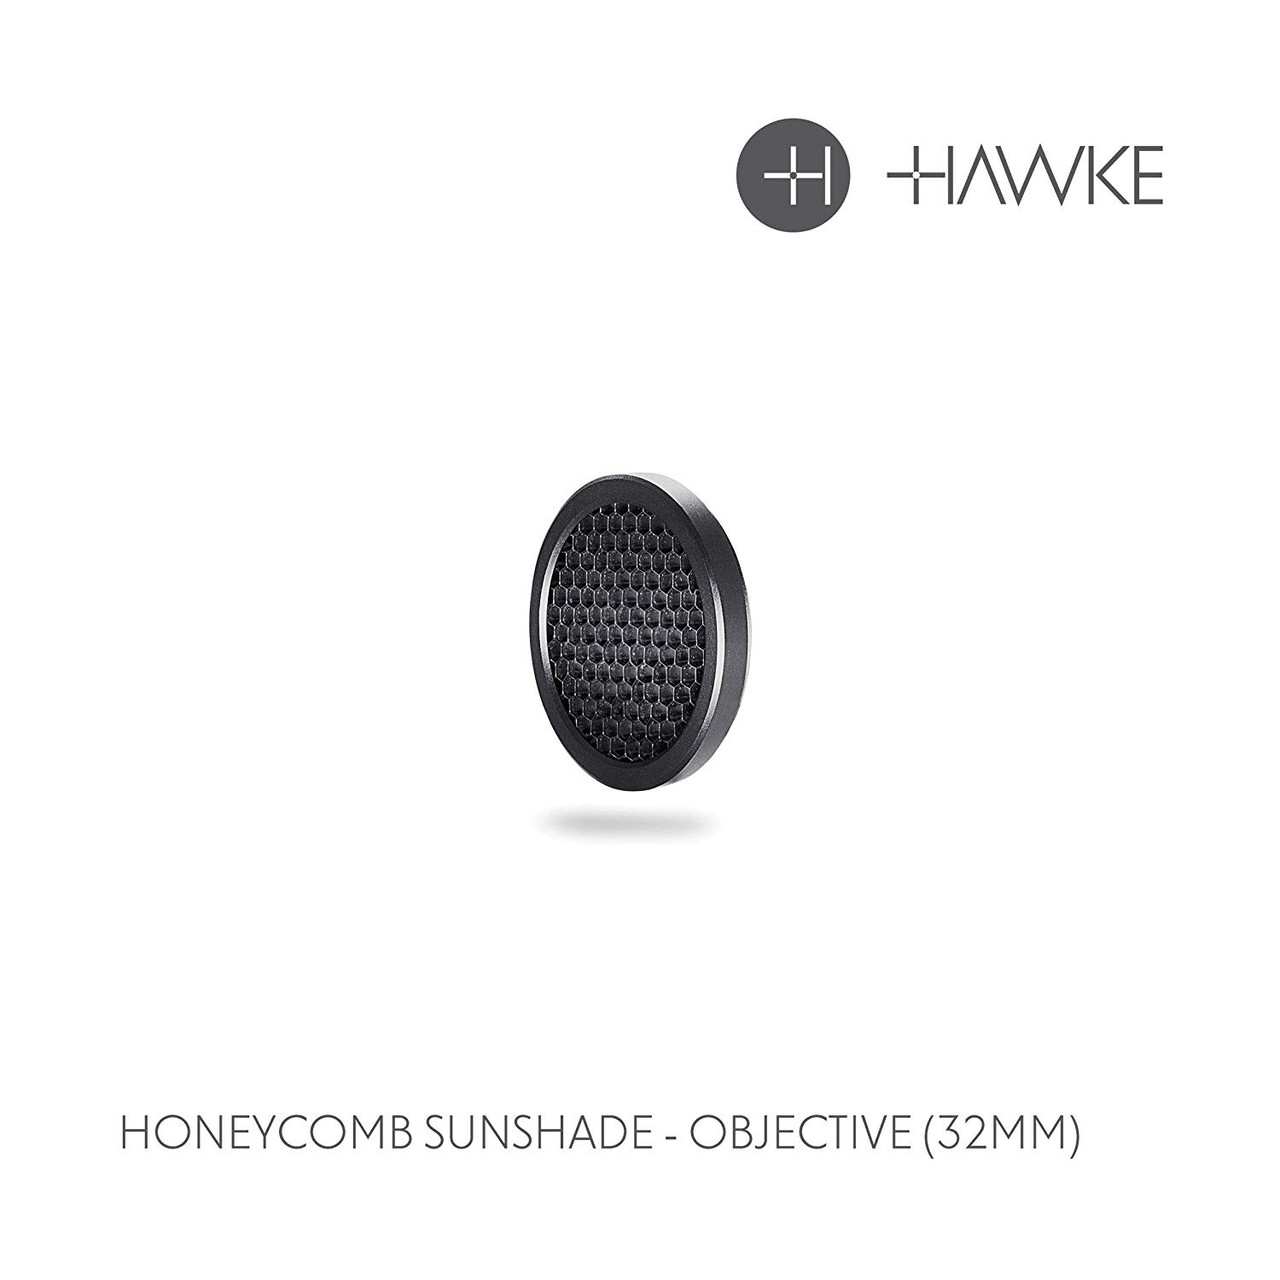 Hawke Honeycomb Rifle Scope Sunshade, 32mm - 62101